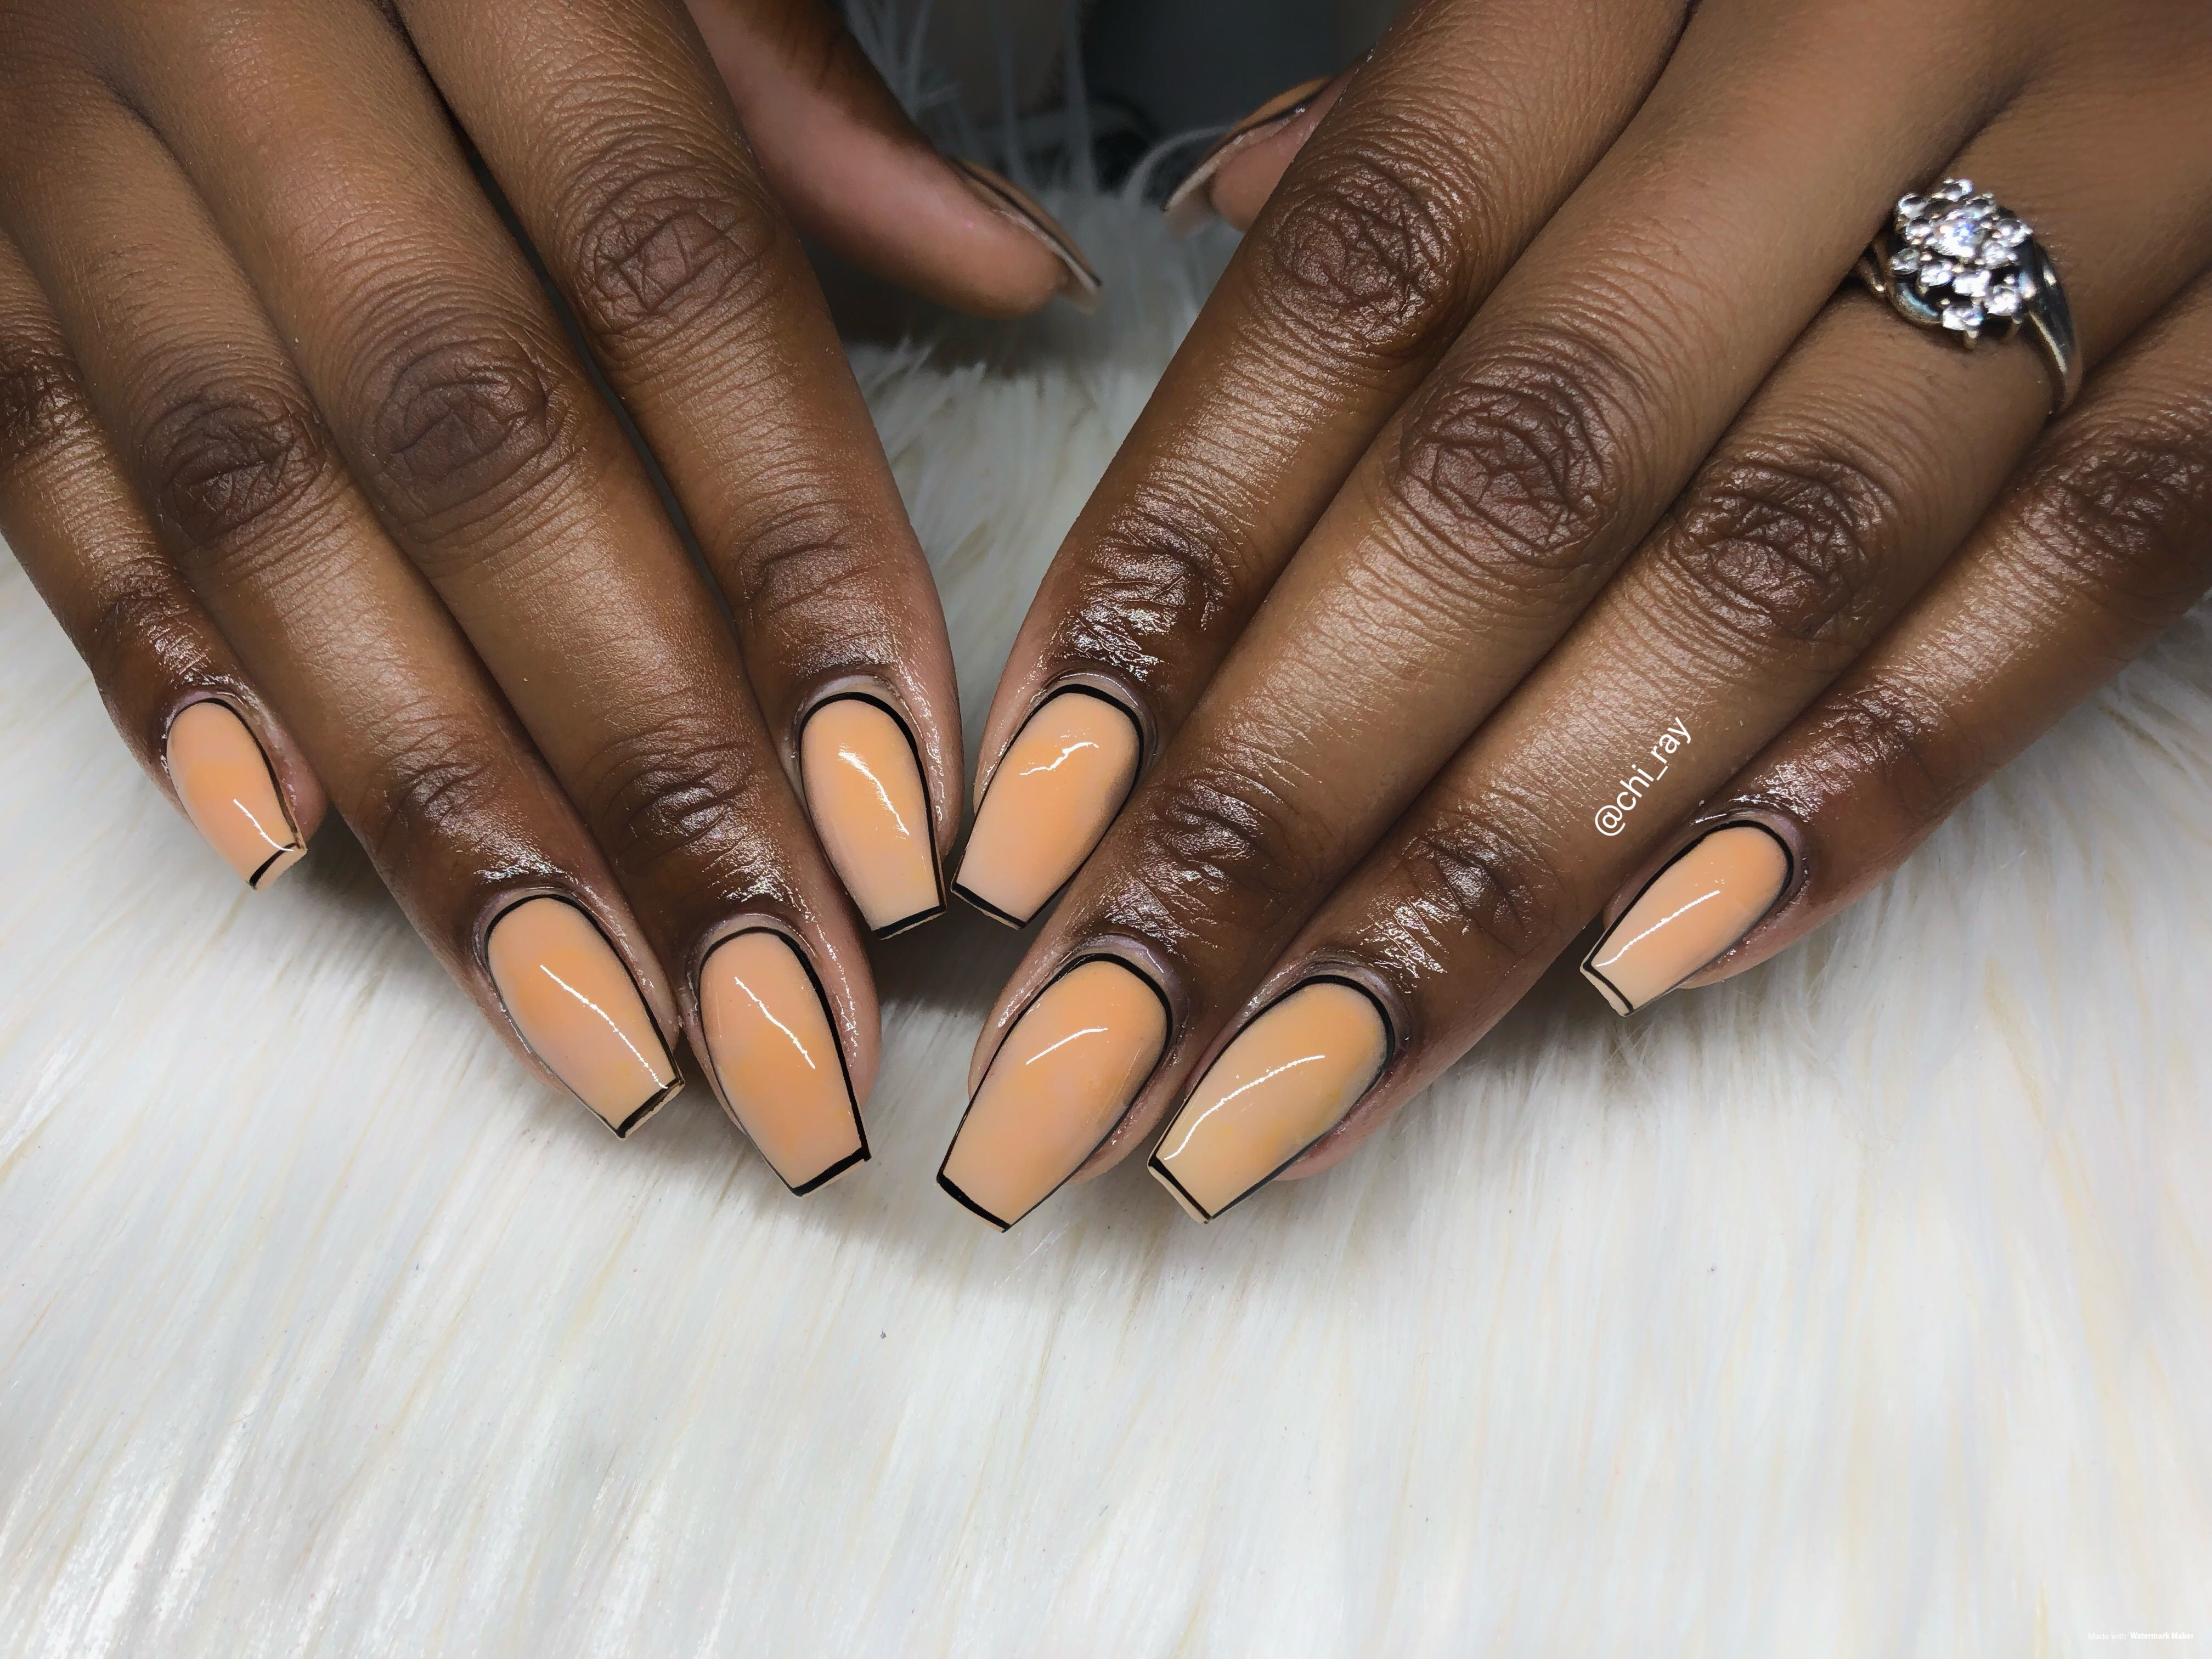 Tan And Black Outline Nails Short Coffin Nails Paintobsessed Glam Short Coffin Nails Coffin Nails Nails